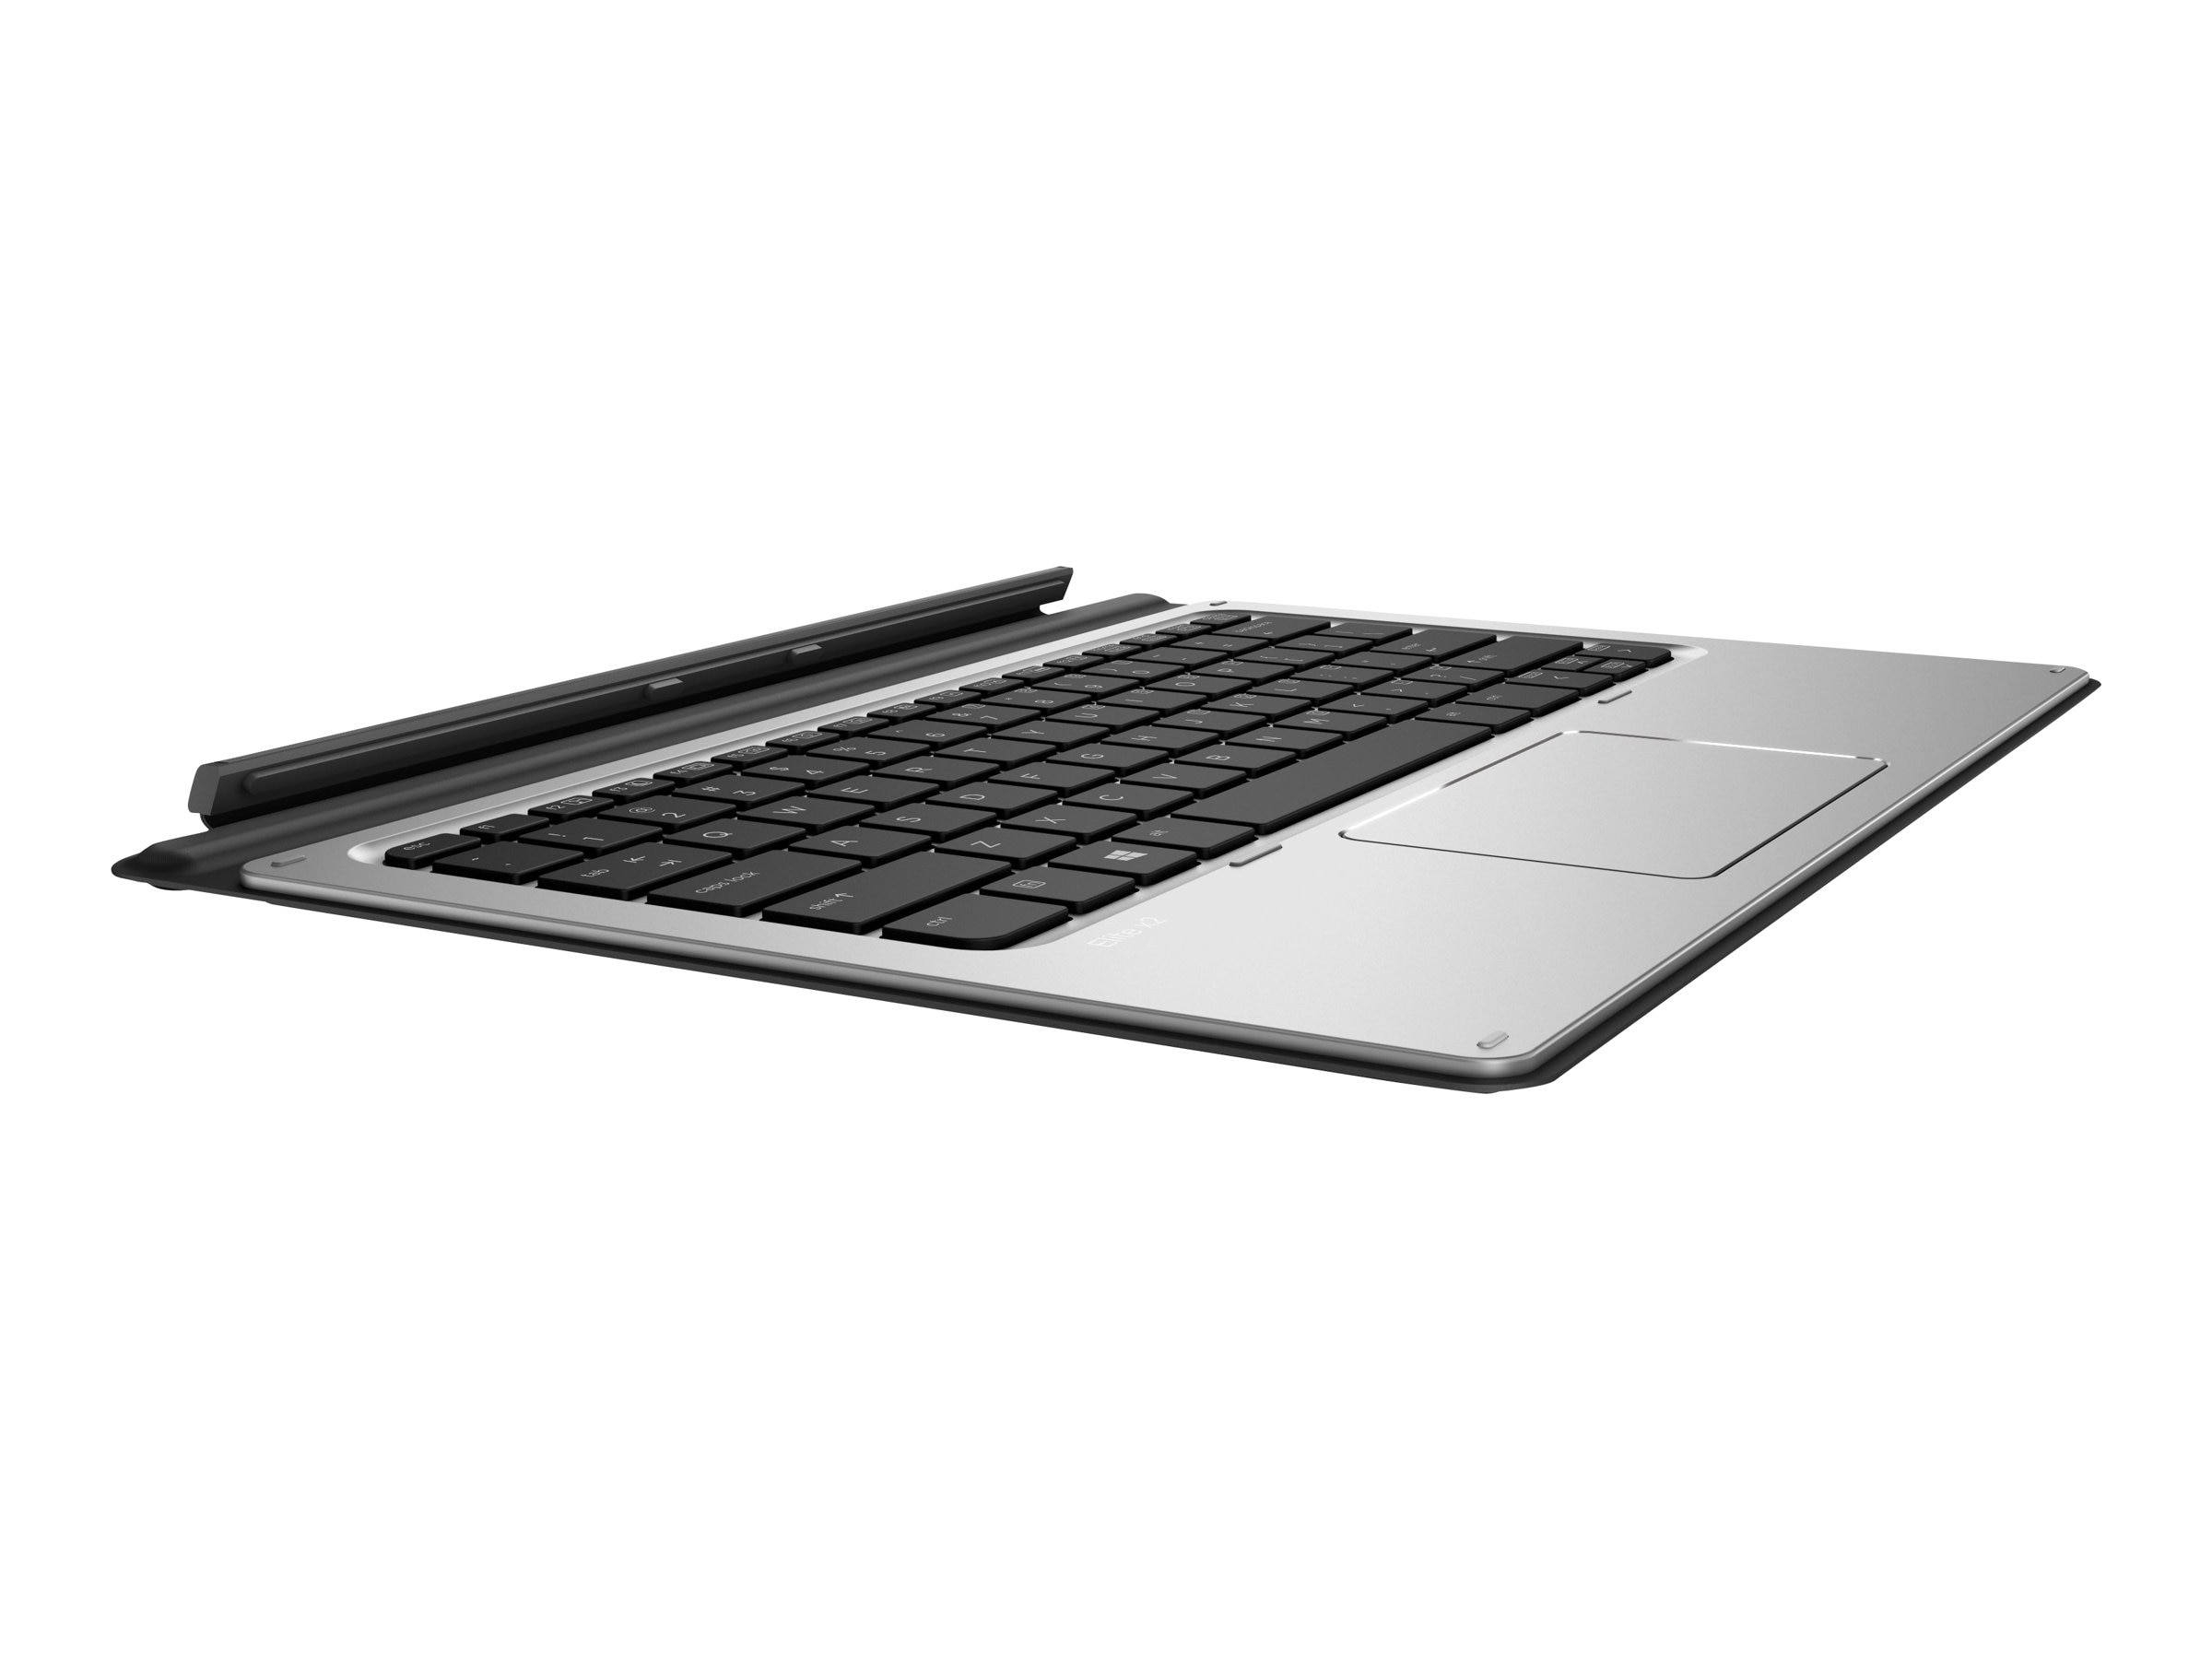 HP Elite x2 1012 G1 Advanced Keyboard, T4Z25AA#ABA